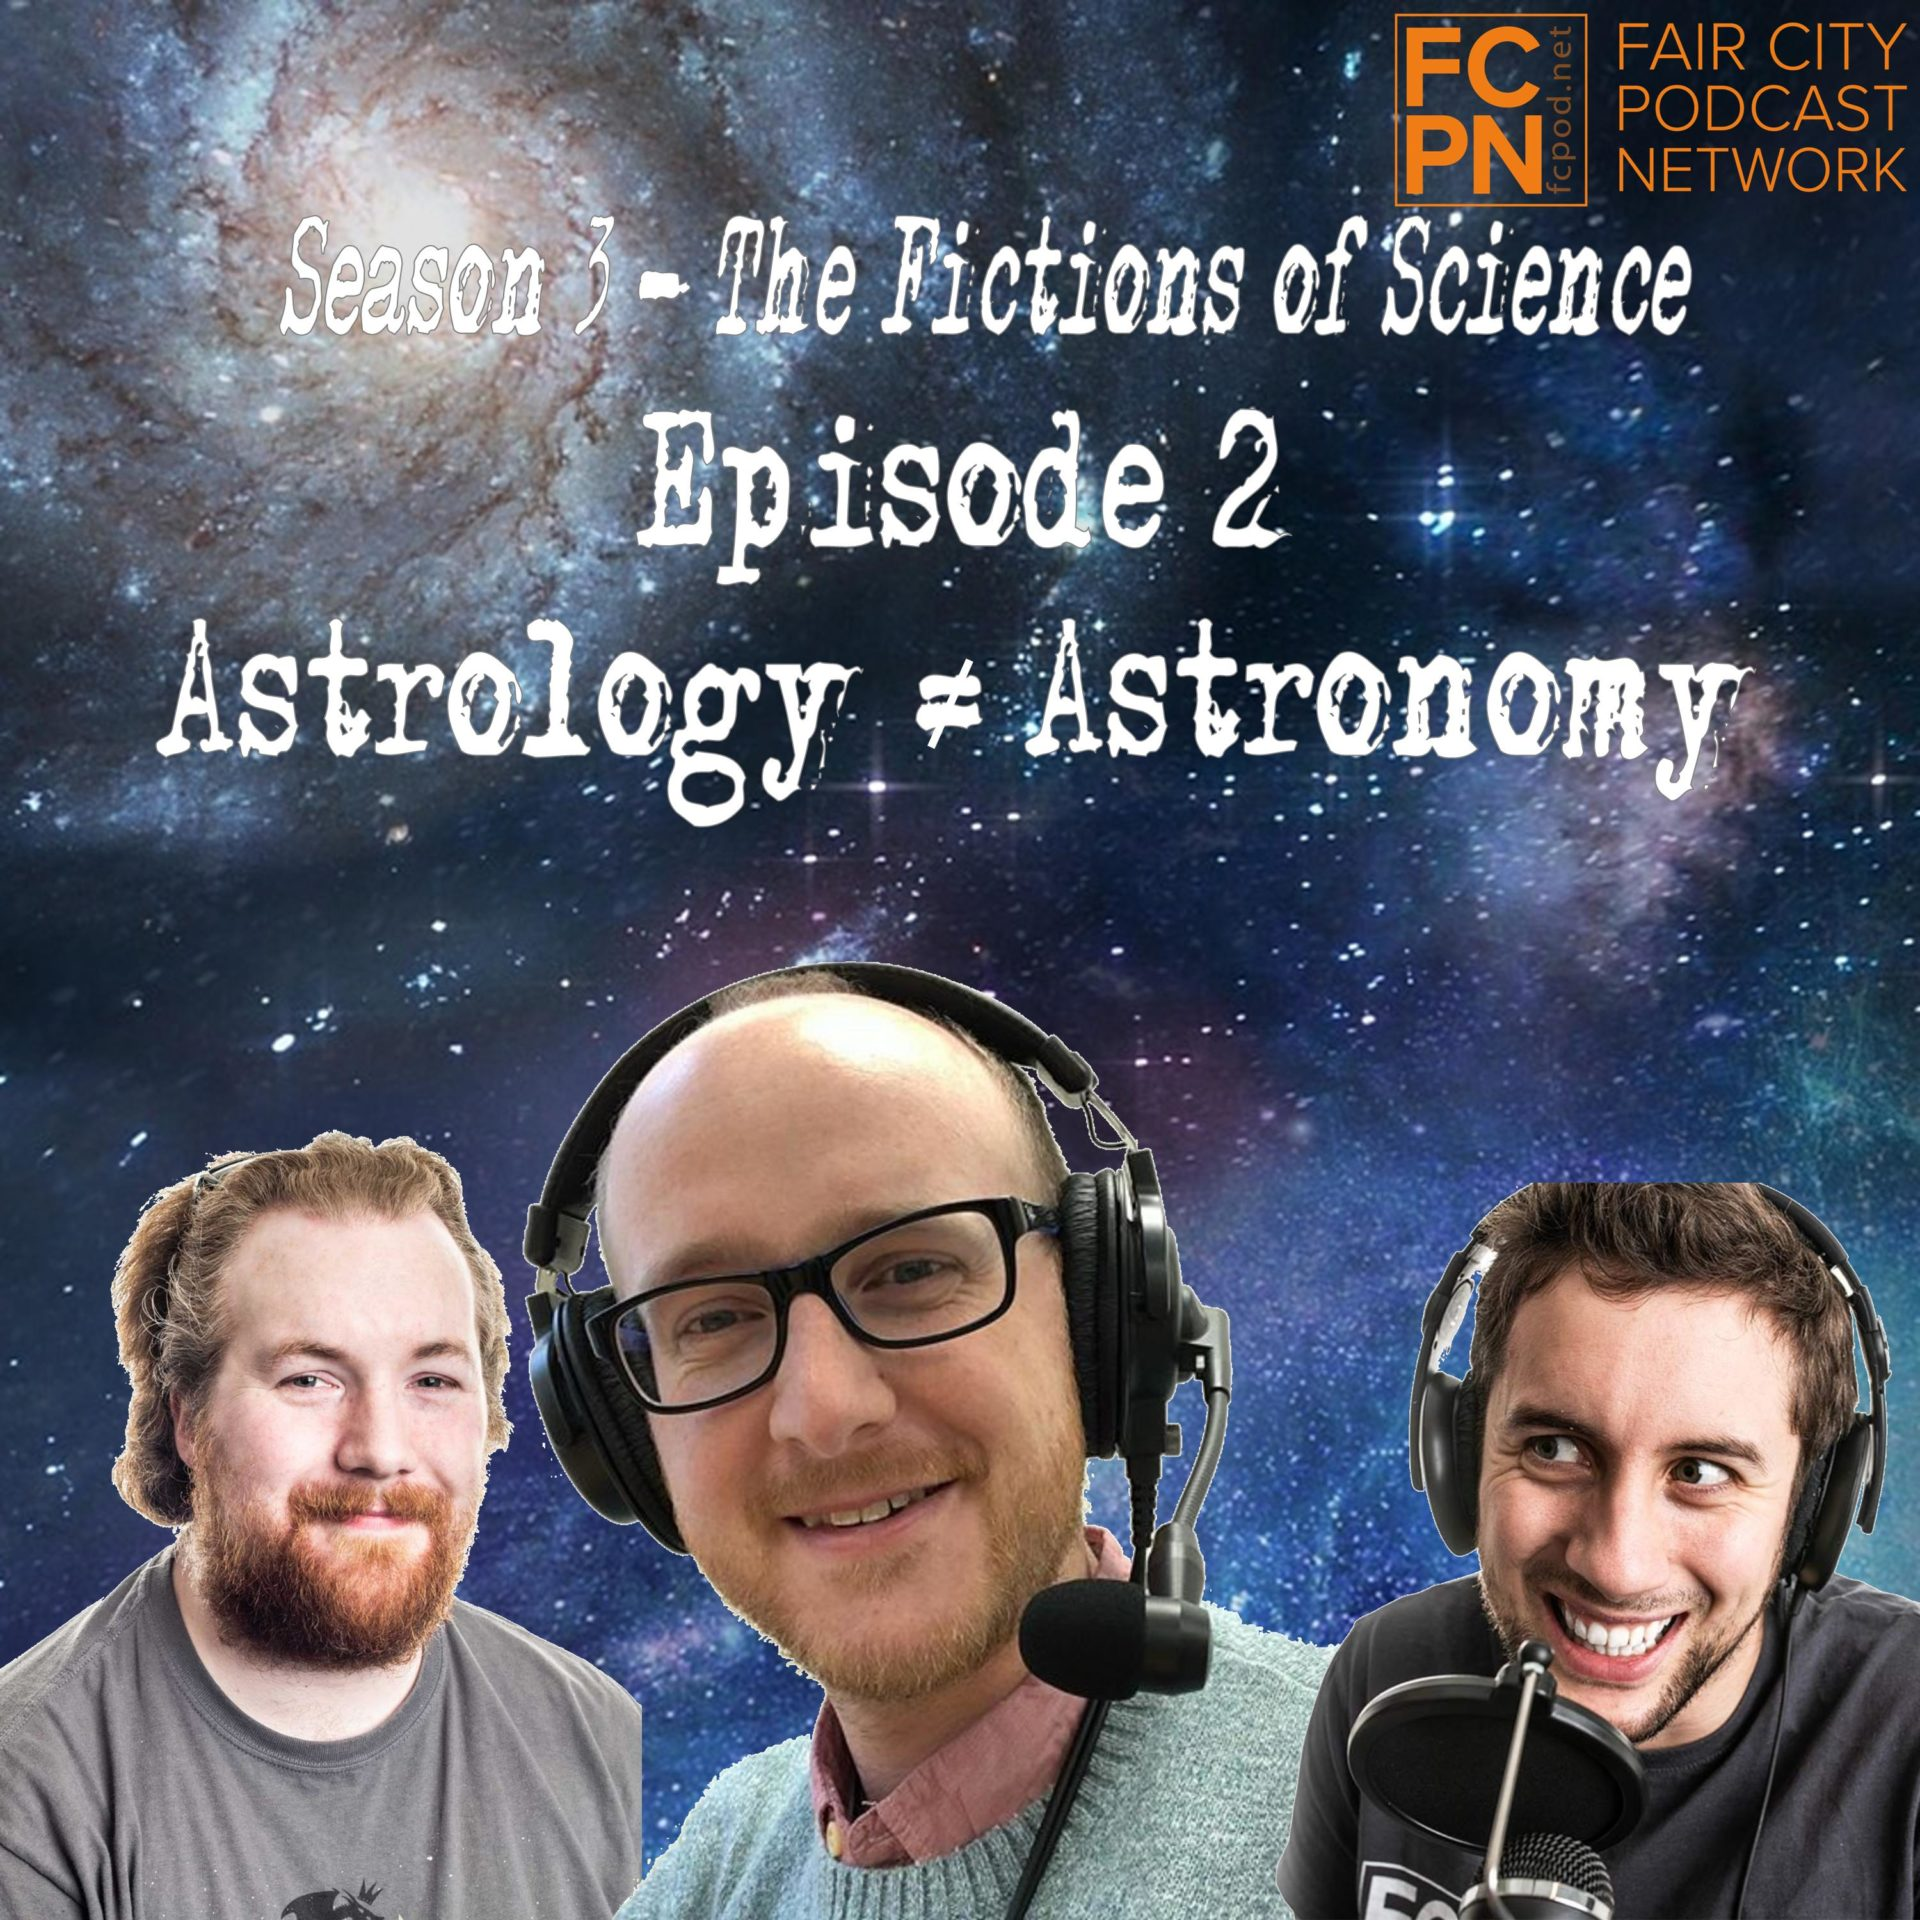 Season 3 Episode 2 – Astrology Does NOT Equal Astronomy